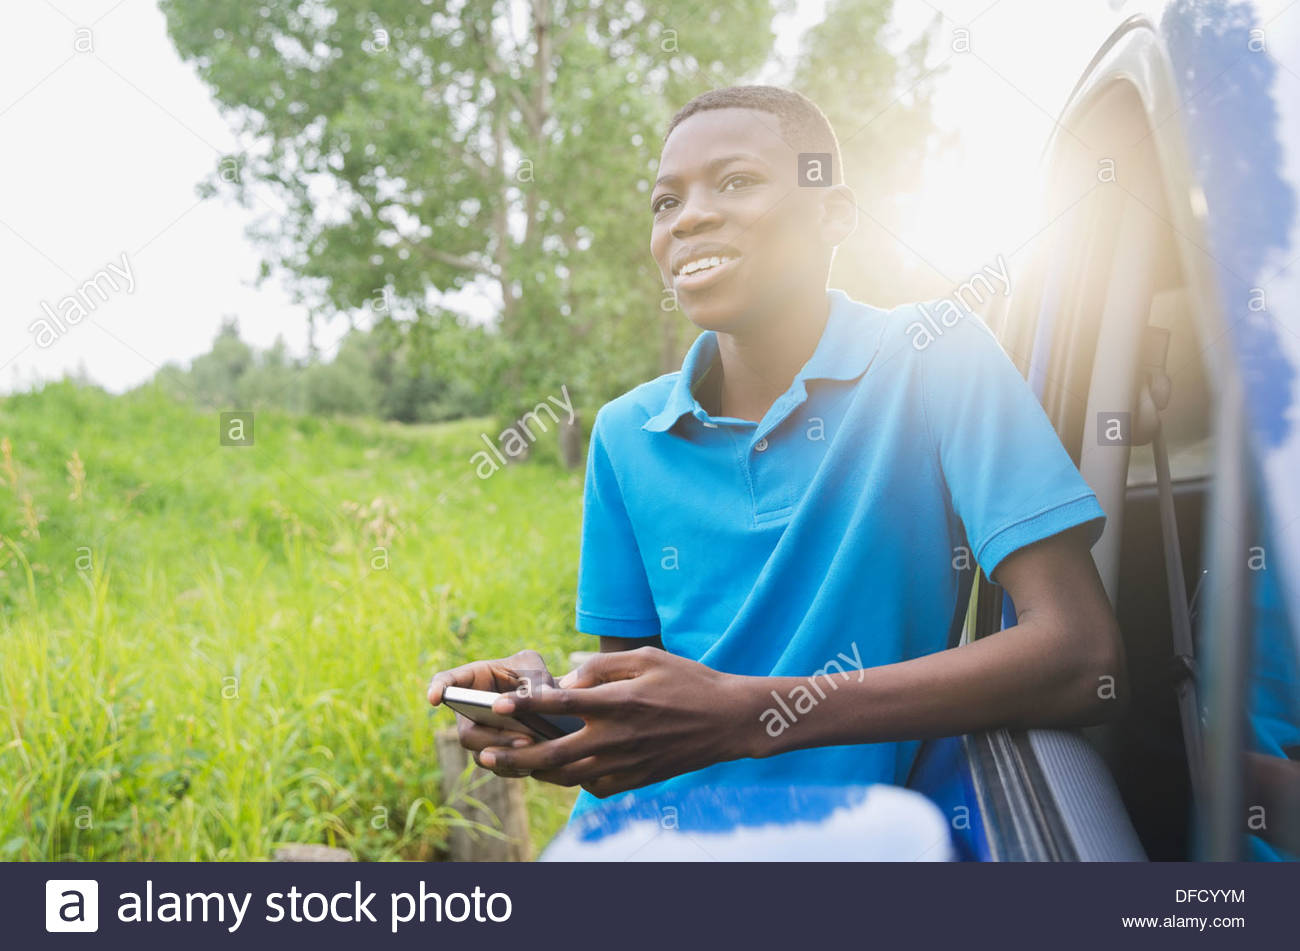 Boy leaning against car holding smart phone - Stock Image